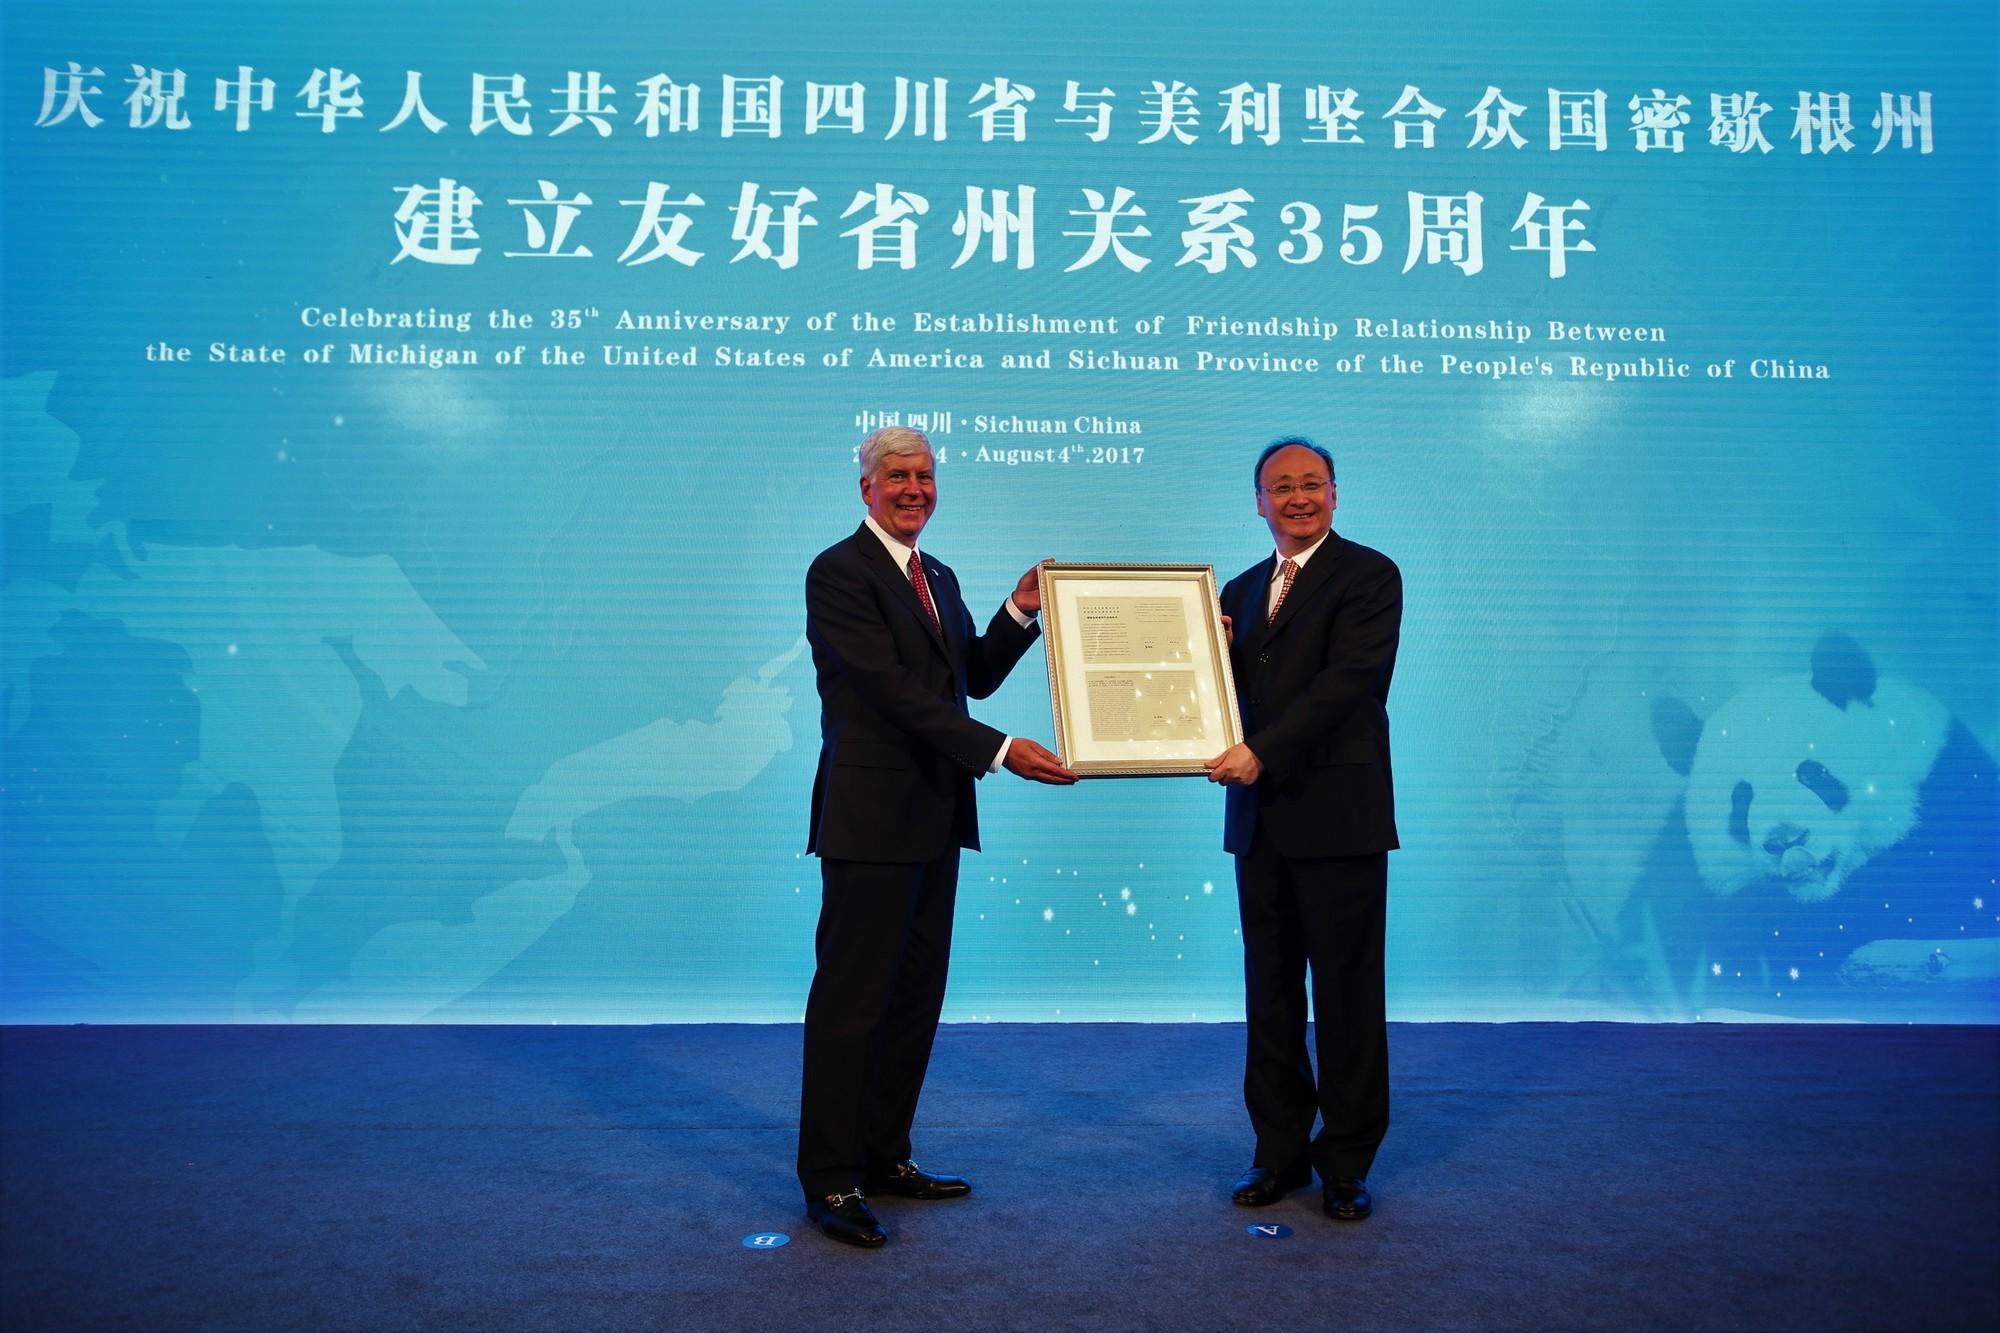 governor-snyder-presenting-governor-yin-with-the-or_original_1501872162860.jpg